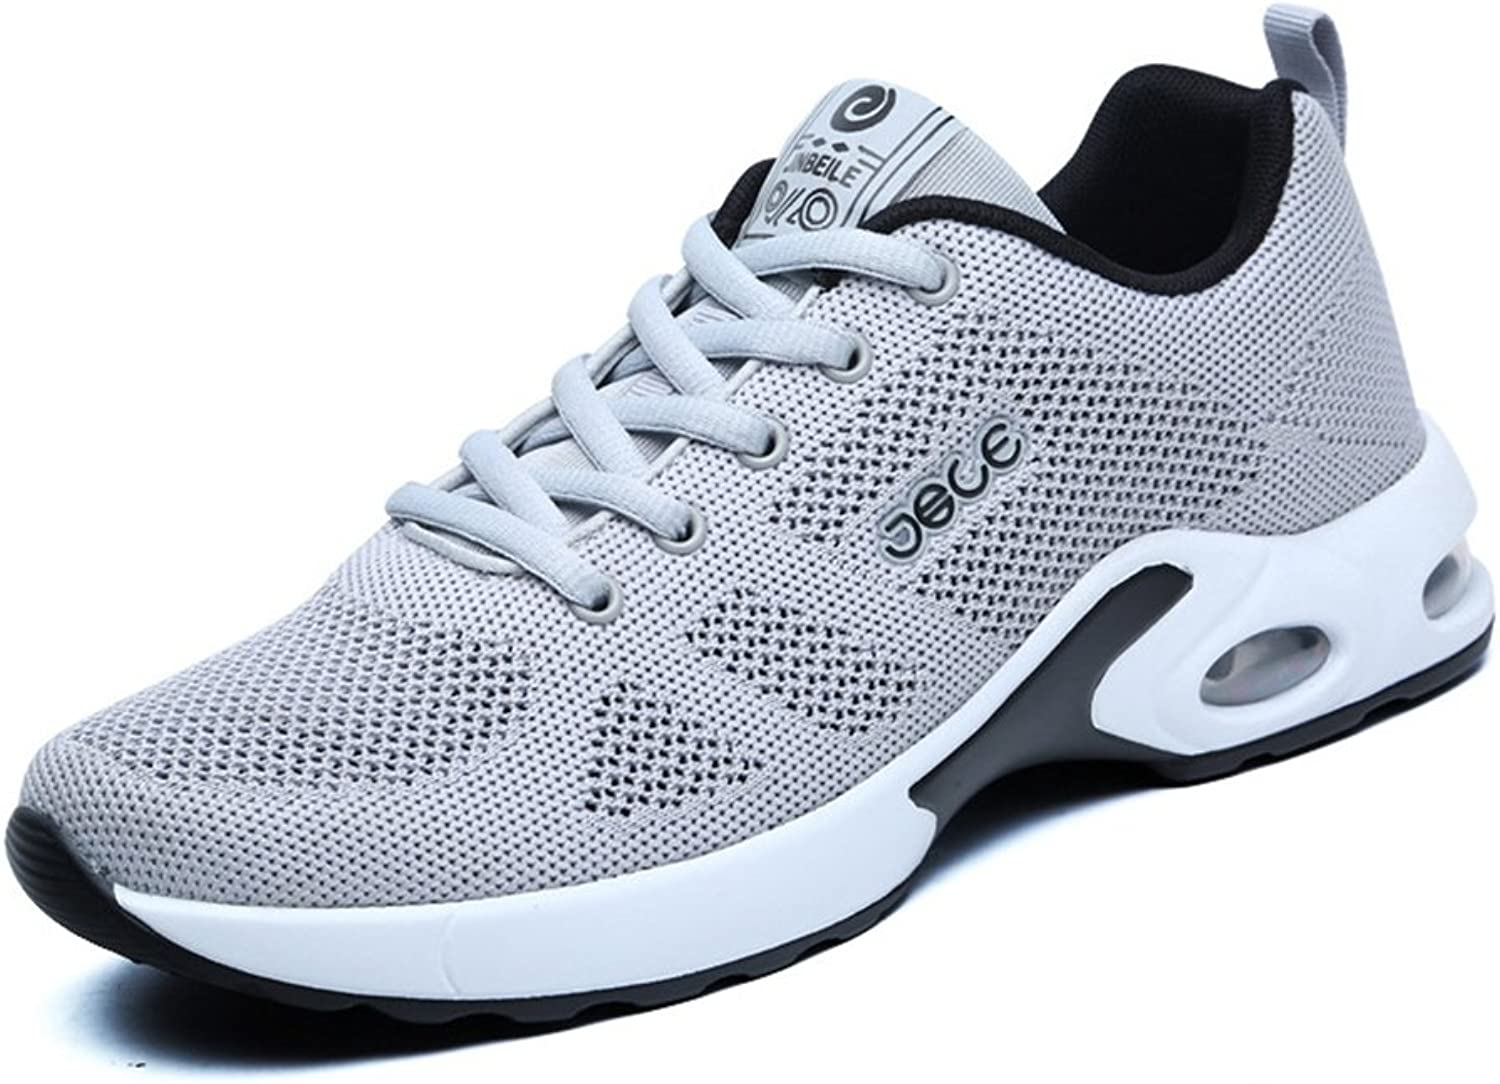 XTIANUK Mens Running shoes, Lightweight Mesh Upper Low Top Sneakers Cool Anti-Shock Lace-up Casual Trainers Size 2-10 UK